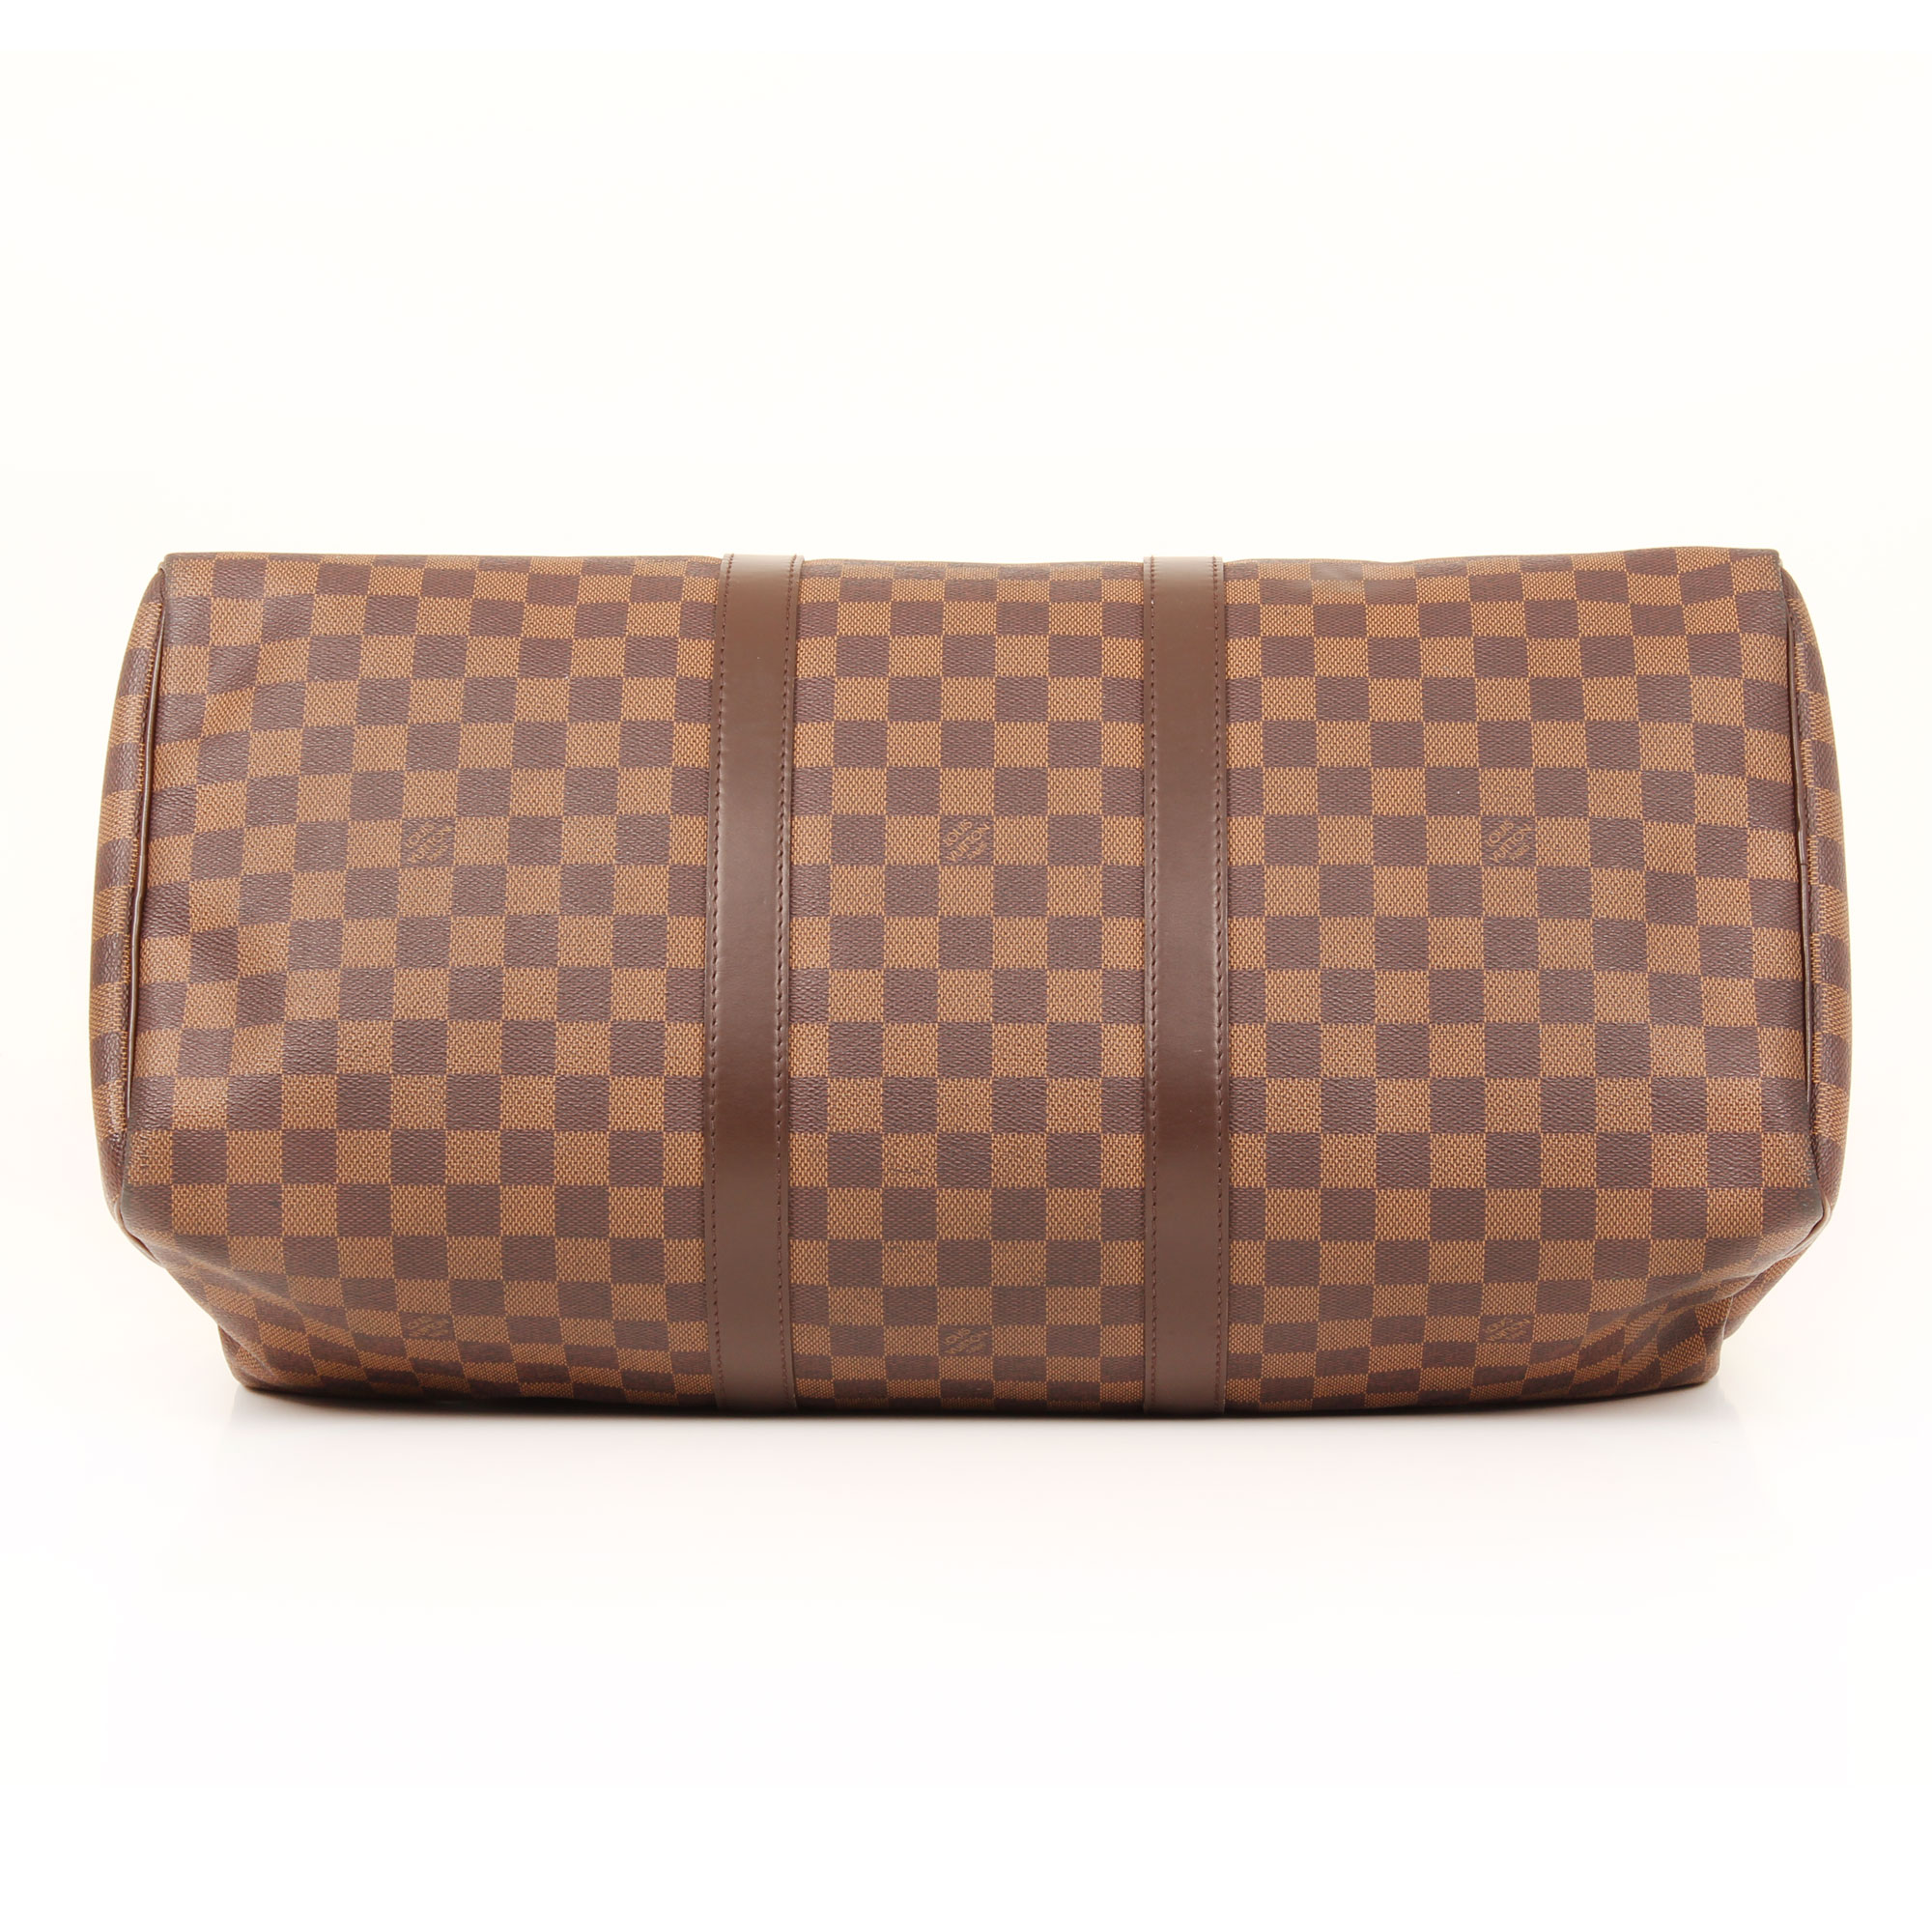 travel-bag-louis-vuitton-keepall-50-damier-ebene-bottom